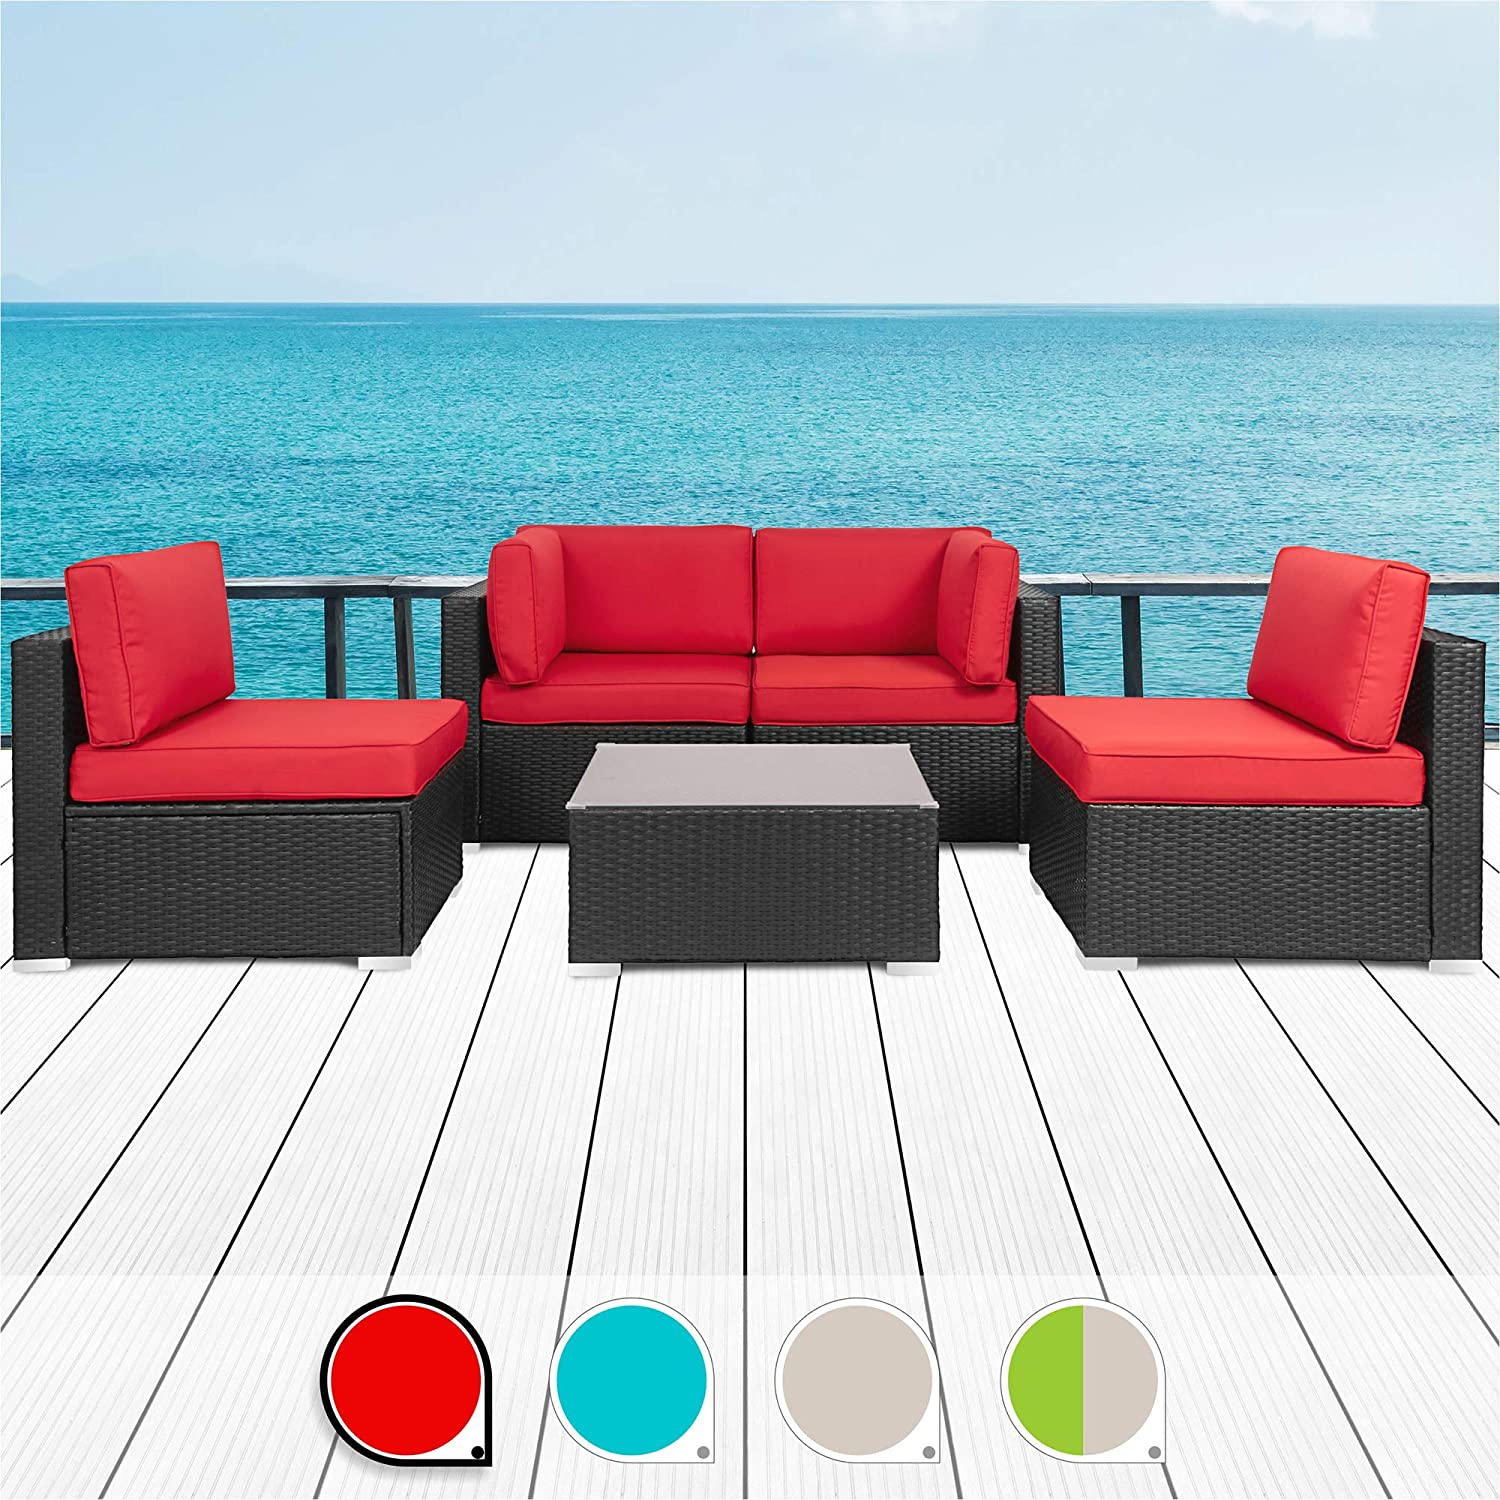 Walsunny 5pcs Patio Outdoor Furniture Sets,Low Back All-Weather Rattan Sectional Sofa with Tea Table Washable Couch Cushions Black Rattan Red